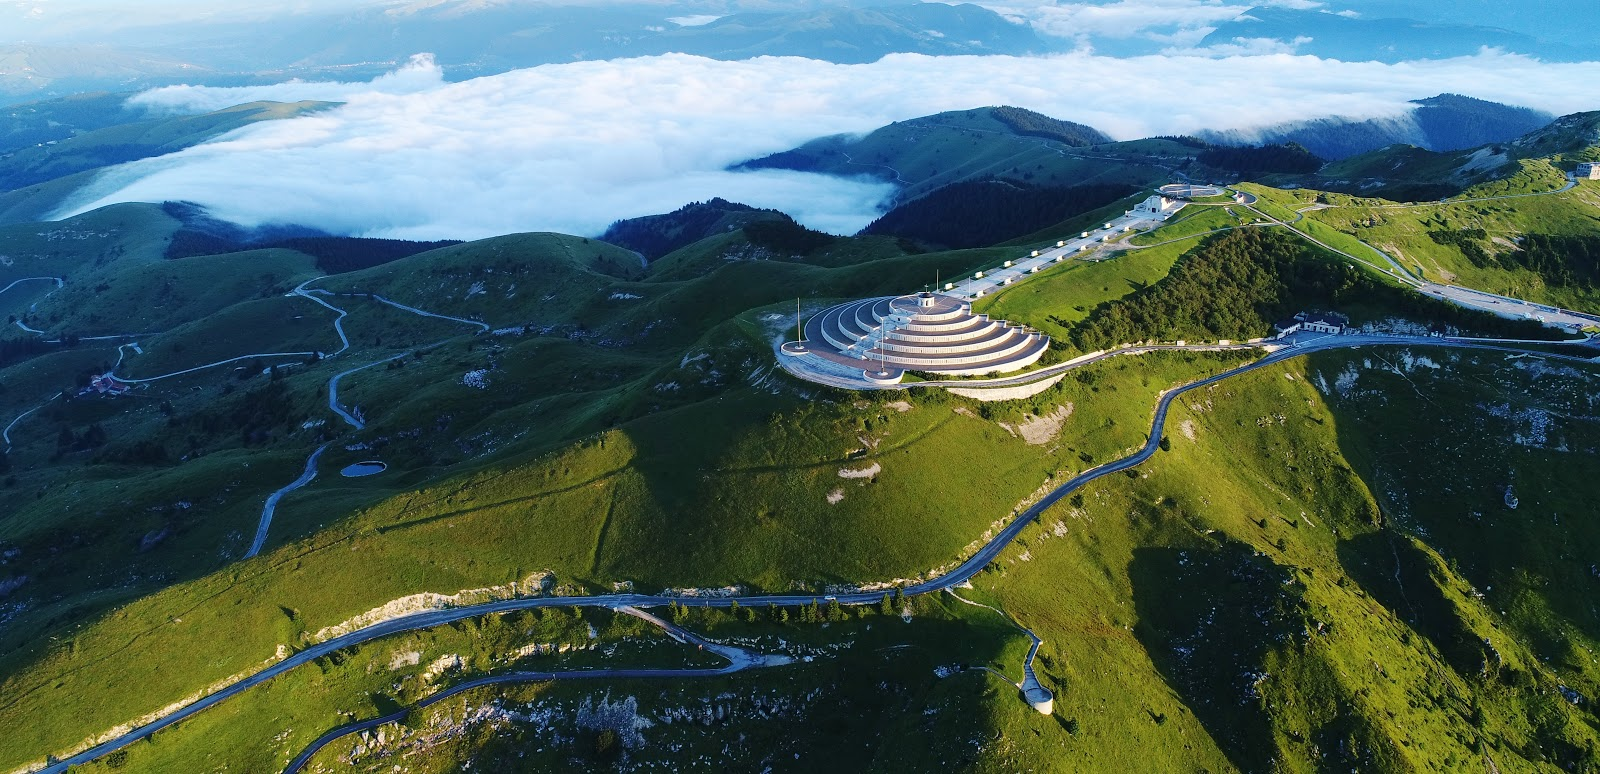 Cycling Monte Grappa from Semonzo - drone aerial photo of Sacrario del Monte Grappa - summit with clouds, Sacrario Militare del Monte Grappa and ossuary